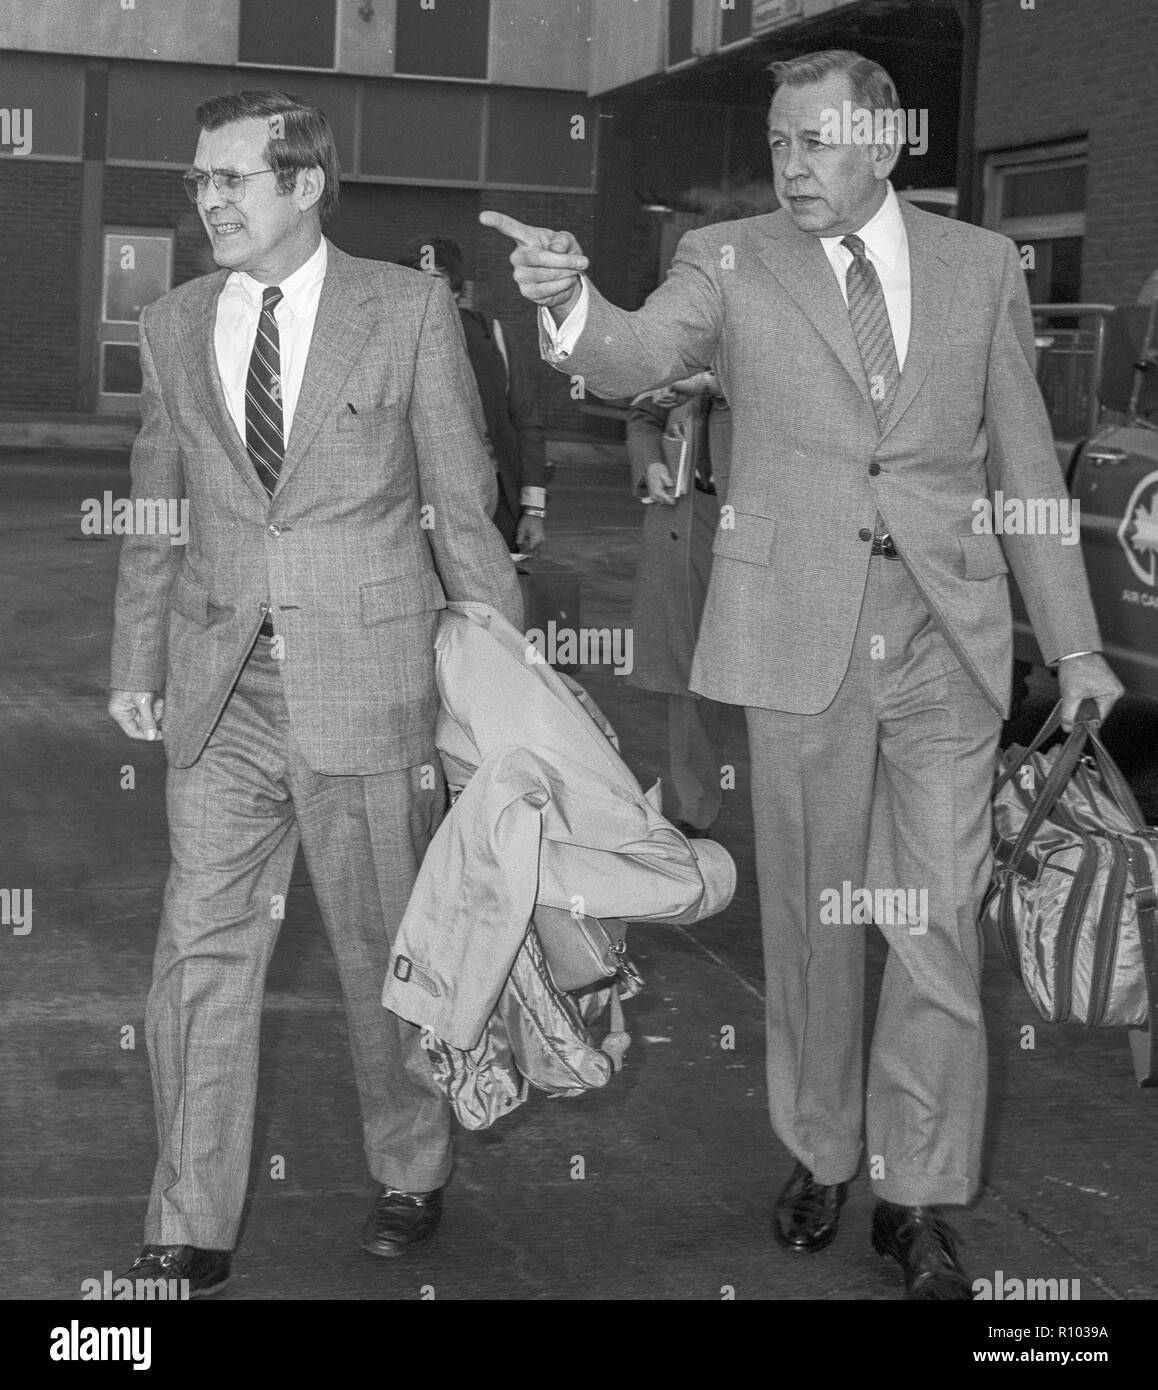 U.S. Politicians Donald Rumsfeld and Charles Price on a visit to London in 1980 - Stock Image